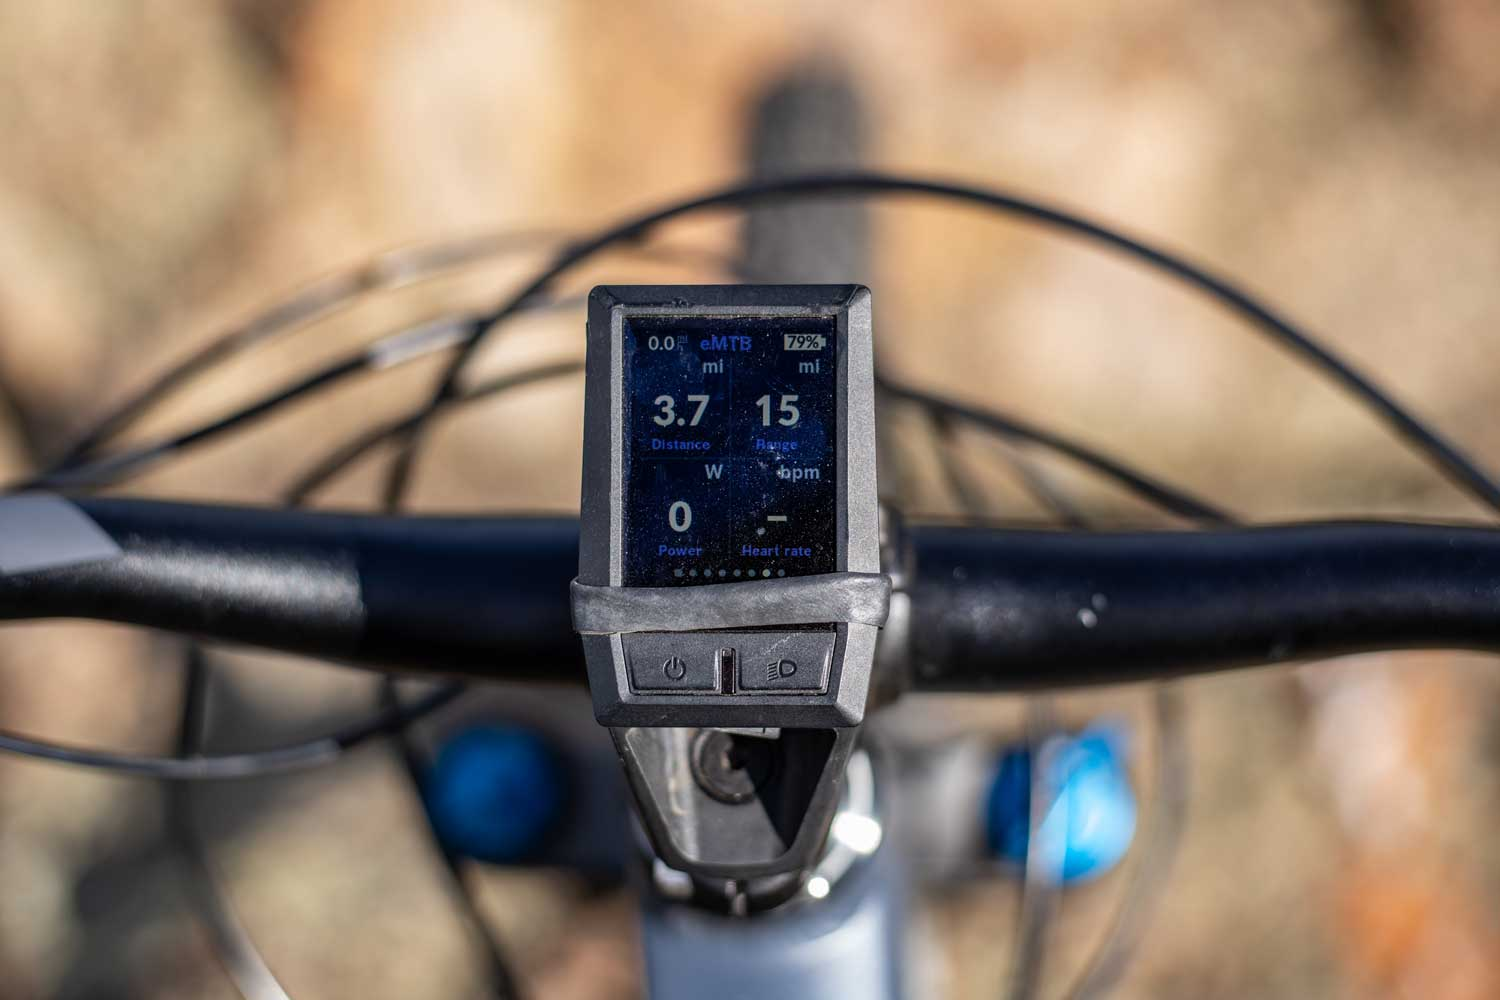 Mondraker Crafty R with the bosch kiox display on the handlebars